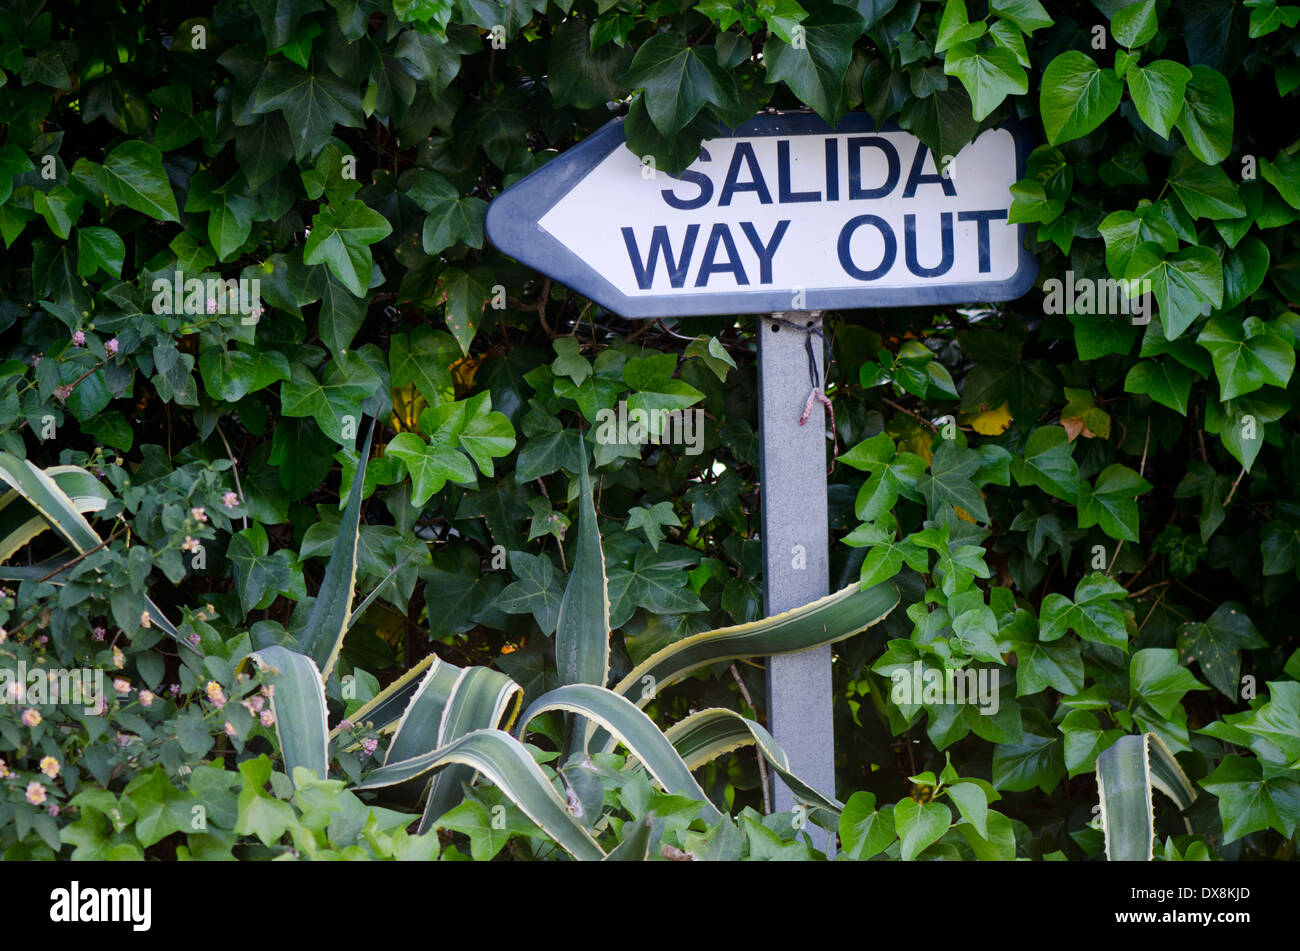 Sign directing way out in English and Spanish. Spain. - Stock Image